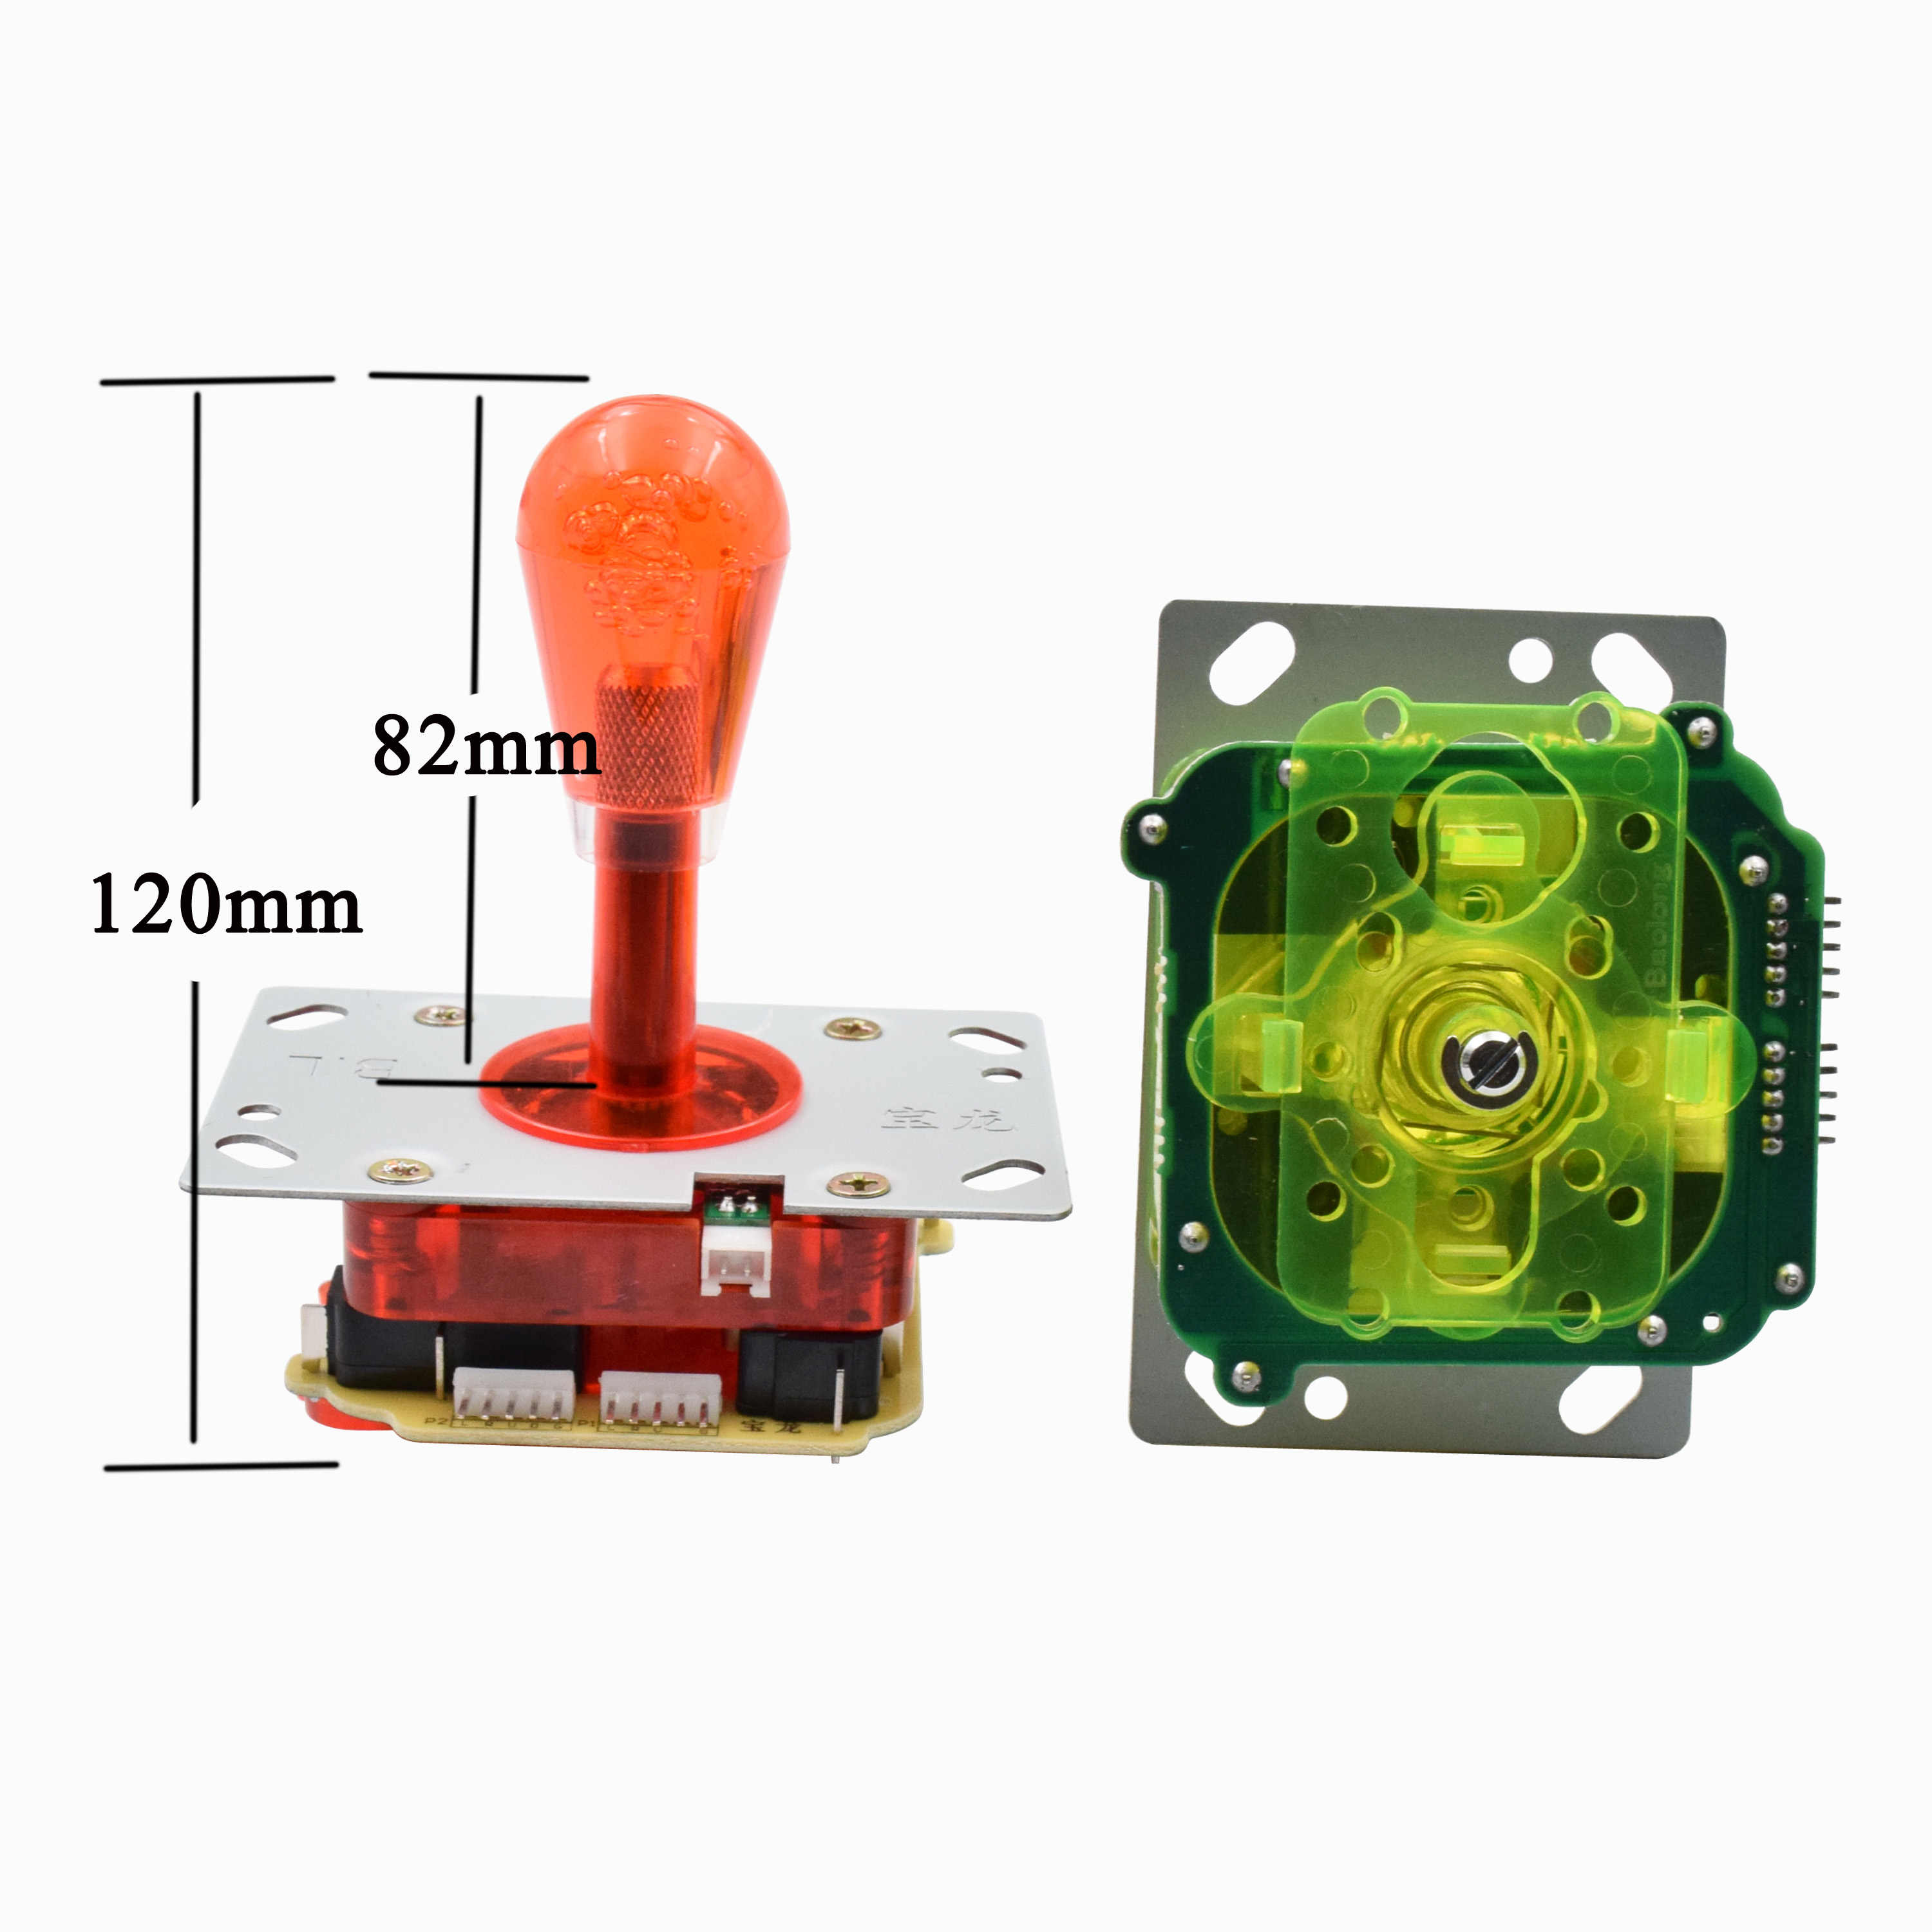 New style ZIPPY Joystick with illumianted lights for Arcade Jamma game with high quality micro switches for Game Console